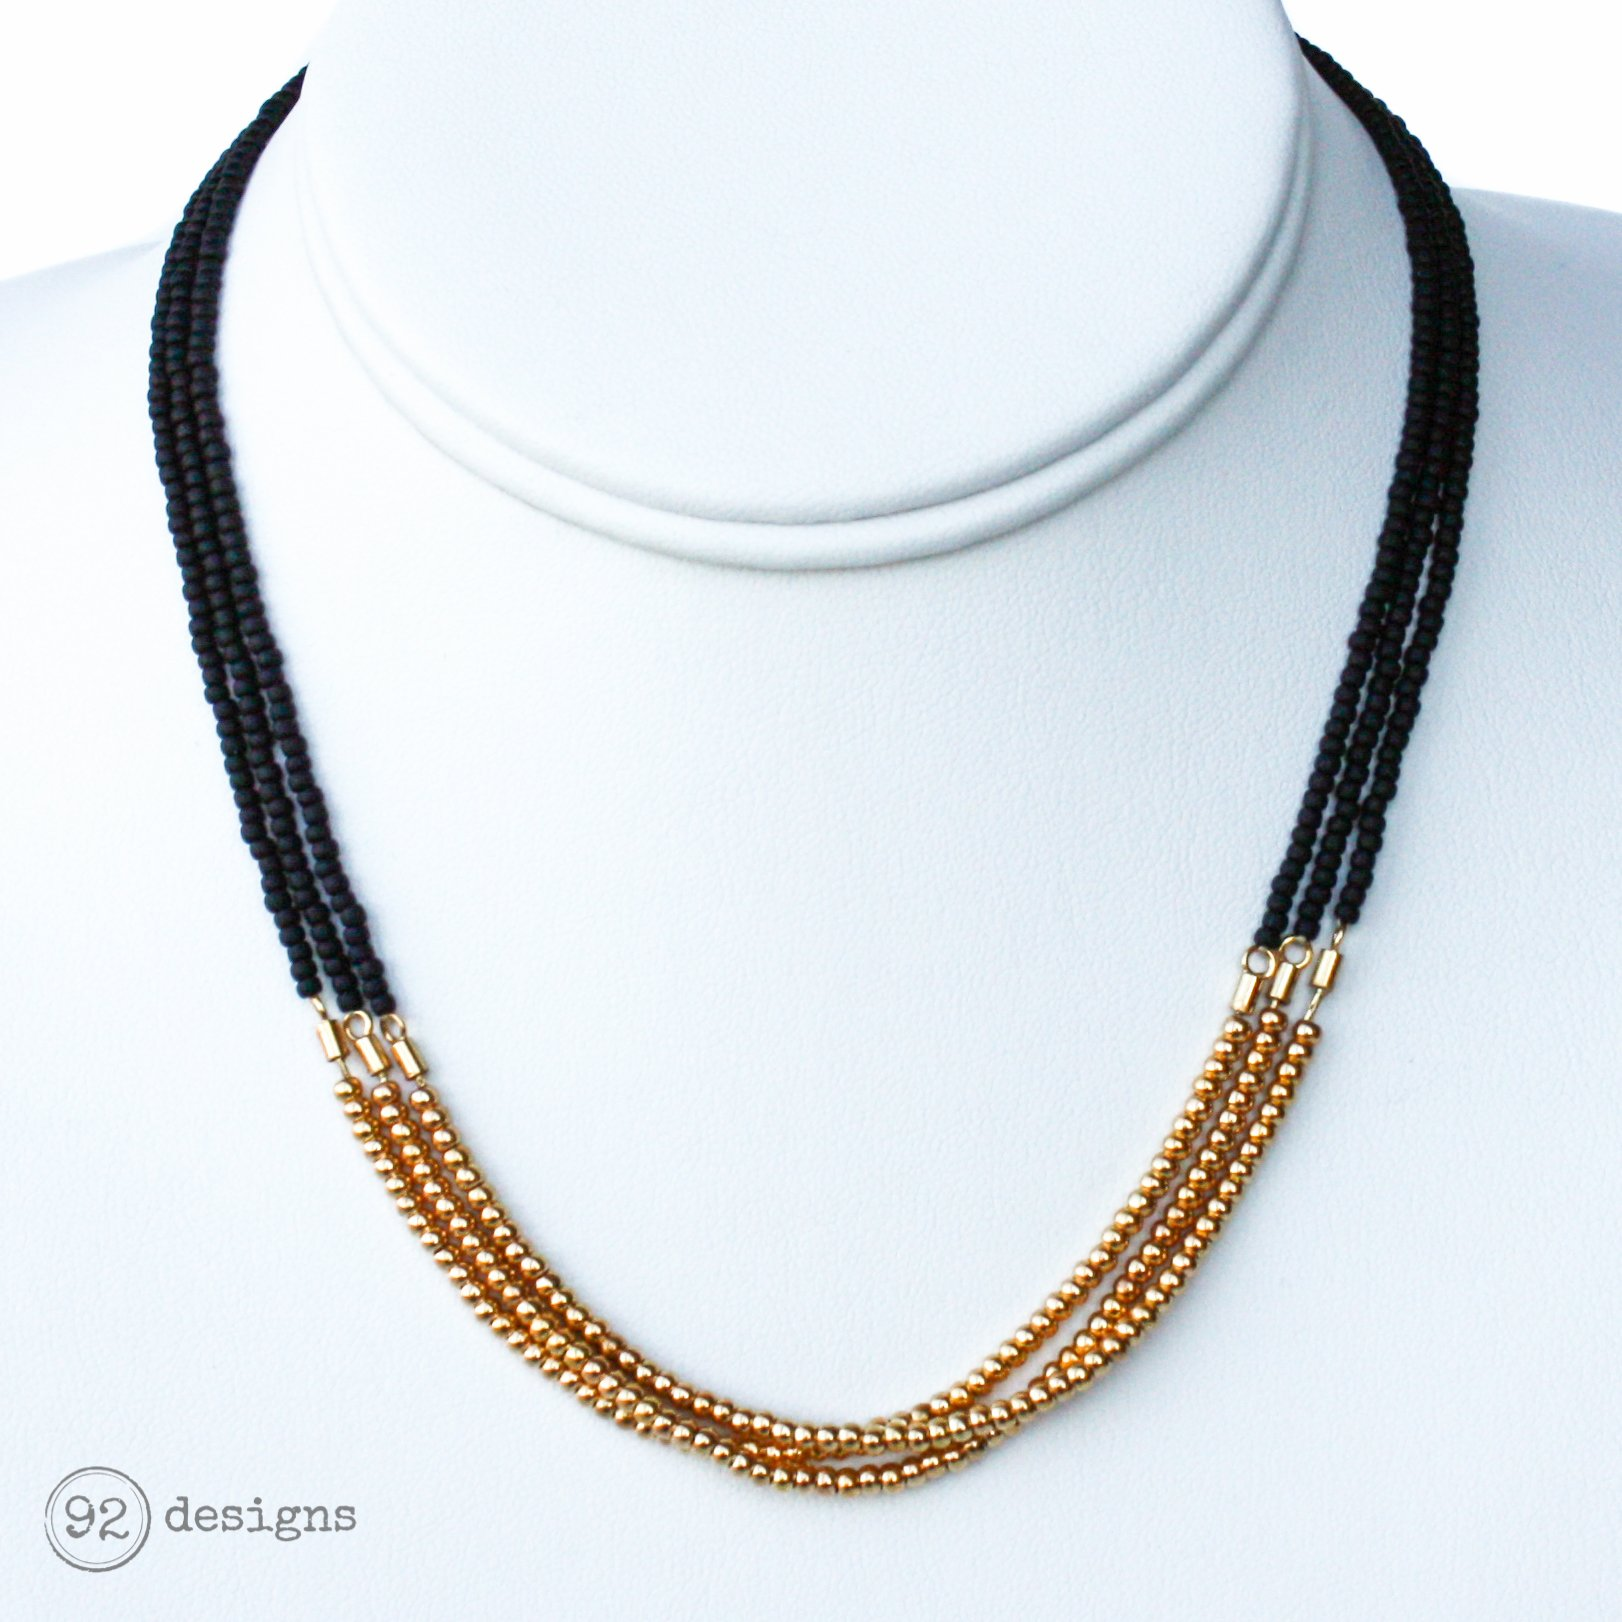 3 Strand – Gold Necklace – 92 Designs | Handcrafted Modern Jewelry